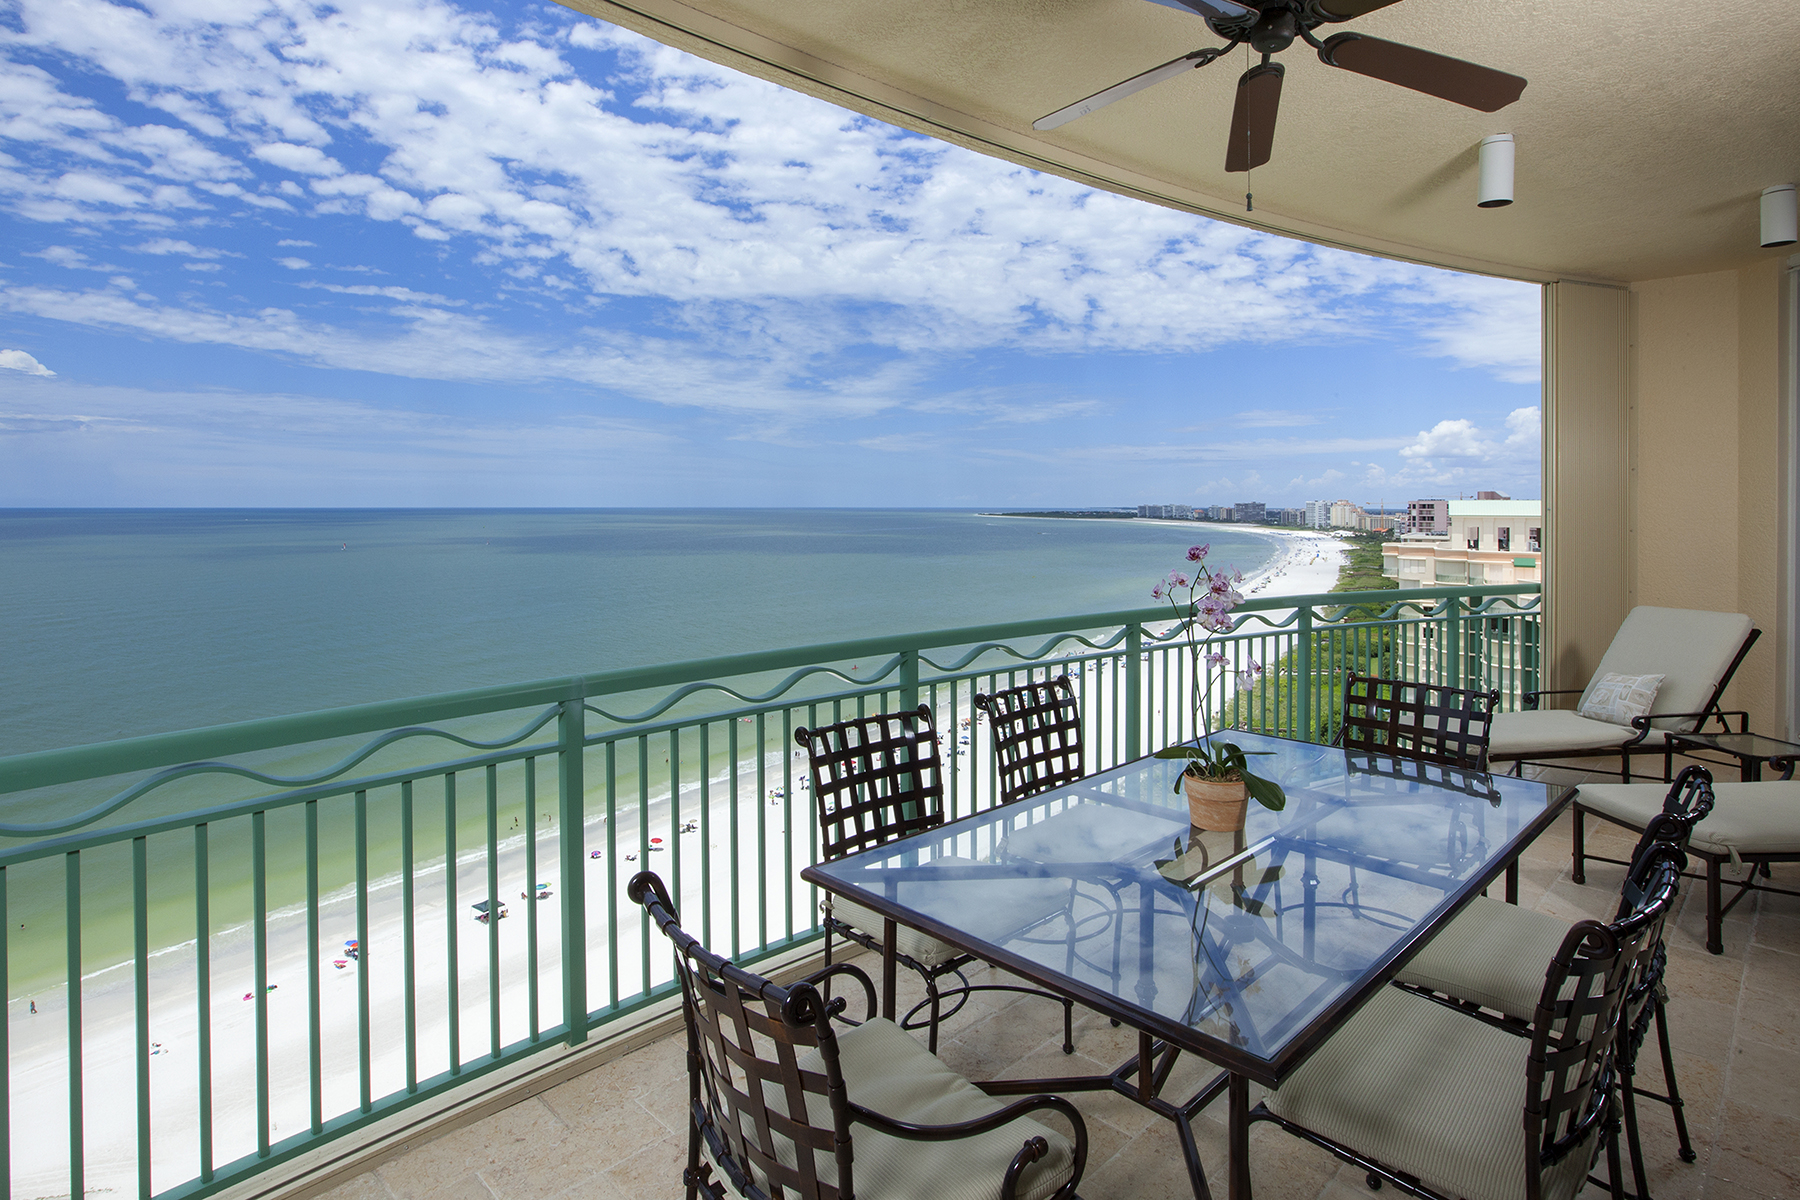 Condominium for Sale at 940 Cape Marco Dr , 1802, Marco Island, FL 34145 940 Cape Marco Dr 1802 Marco Island, Florida, 34145 United States